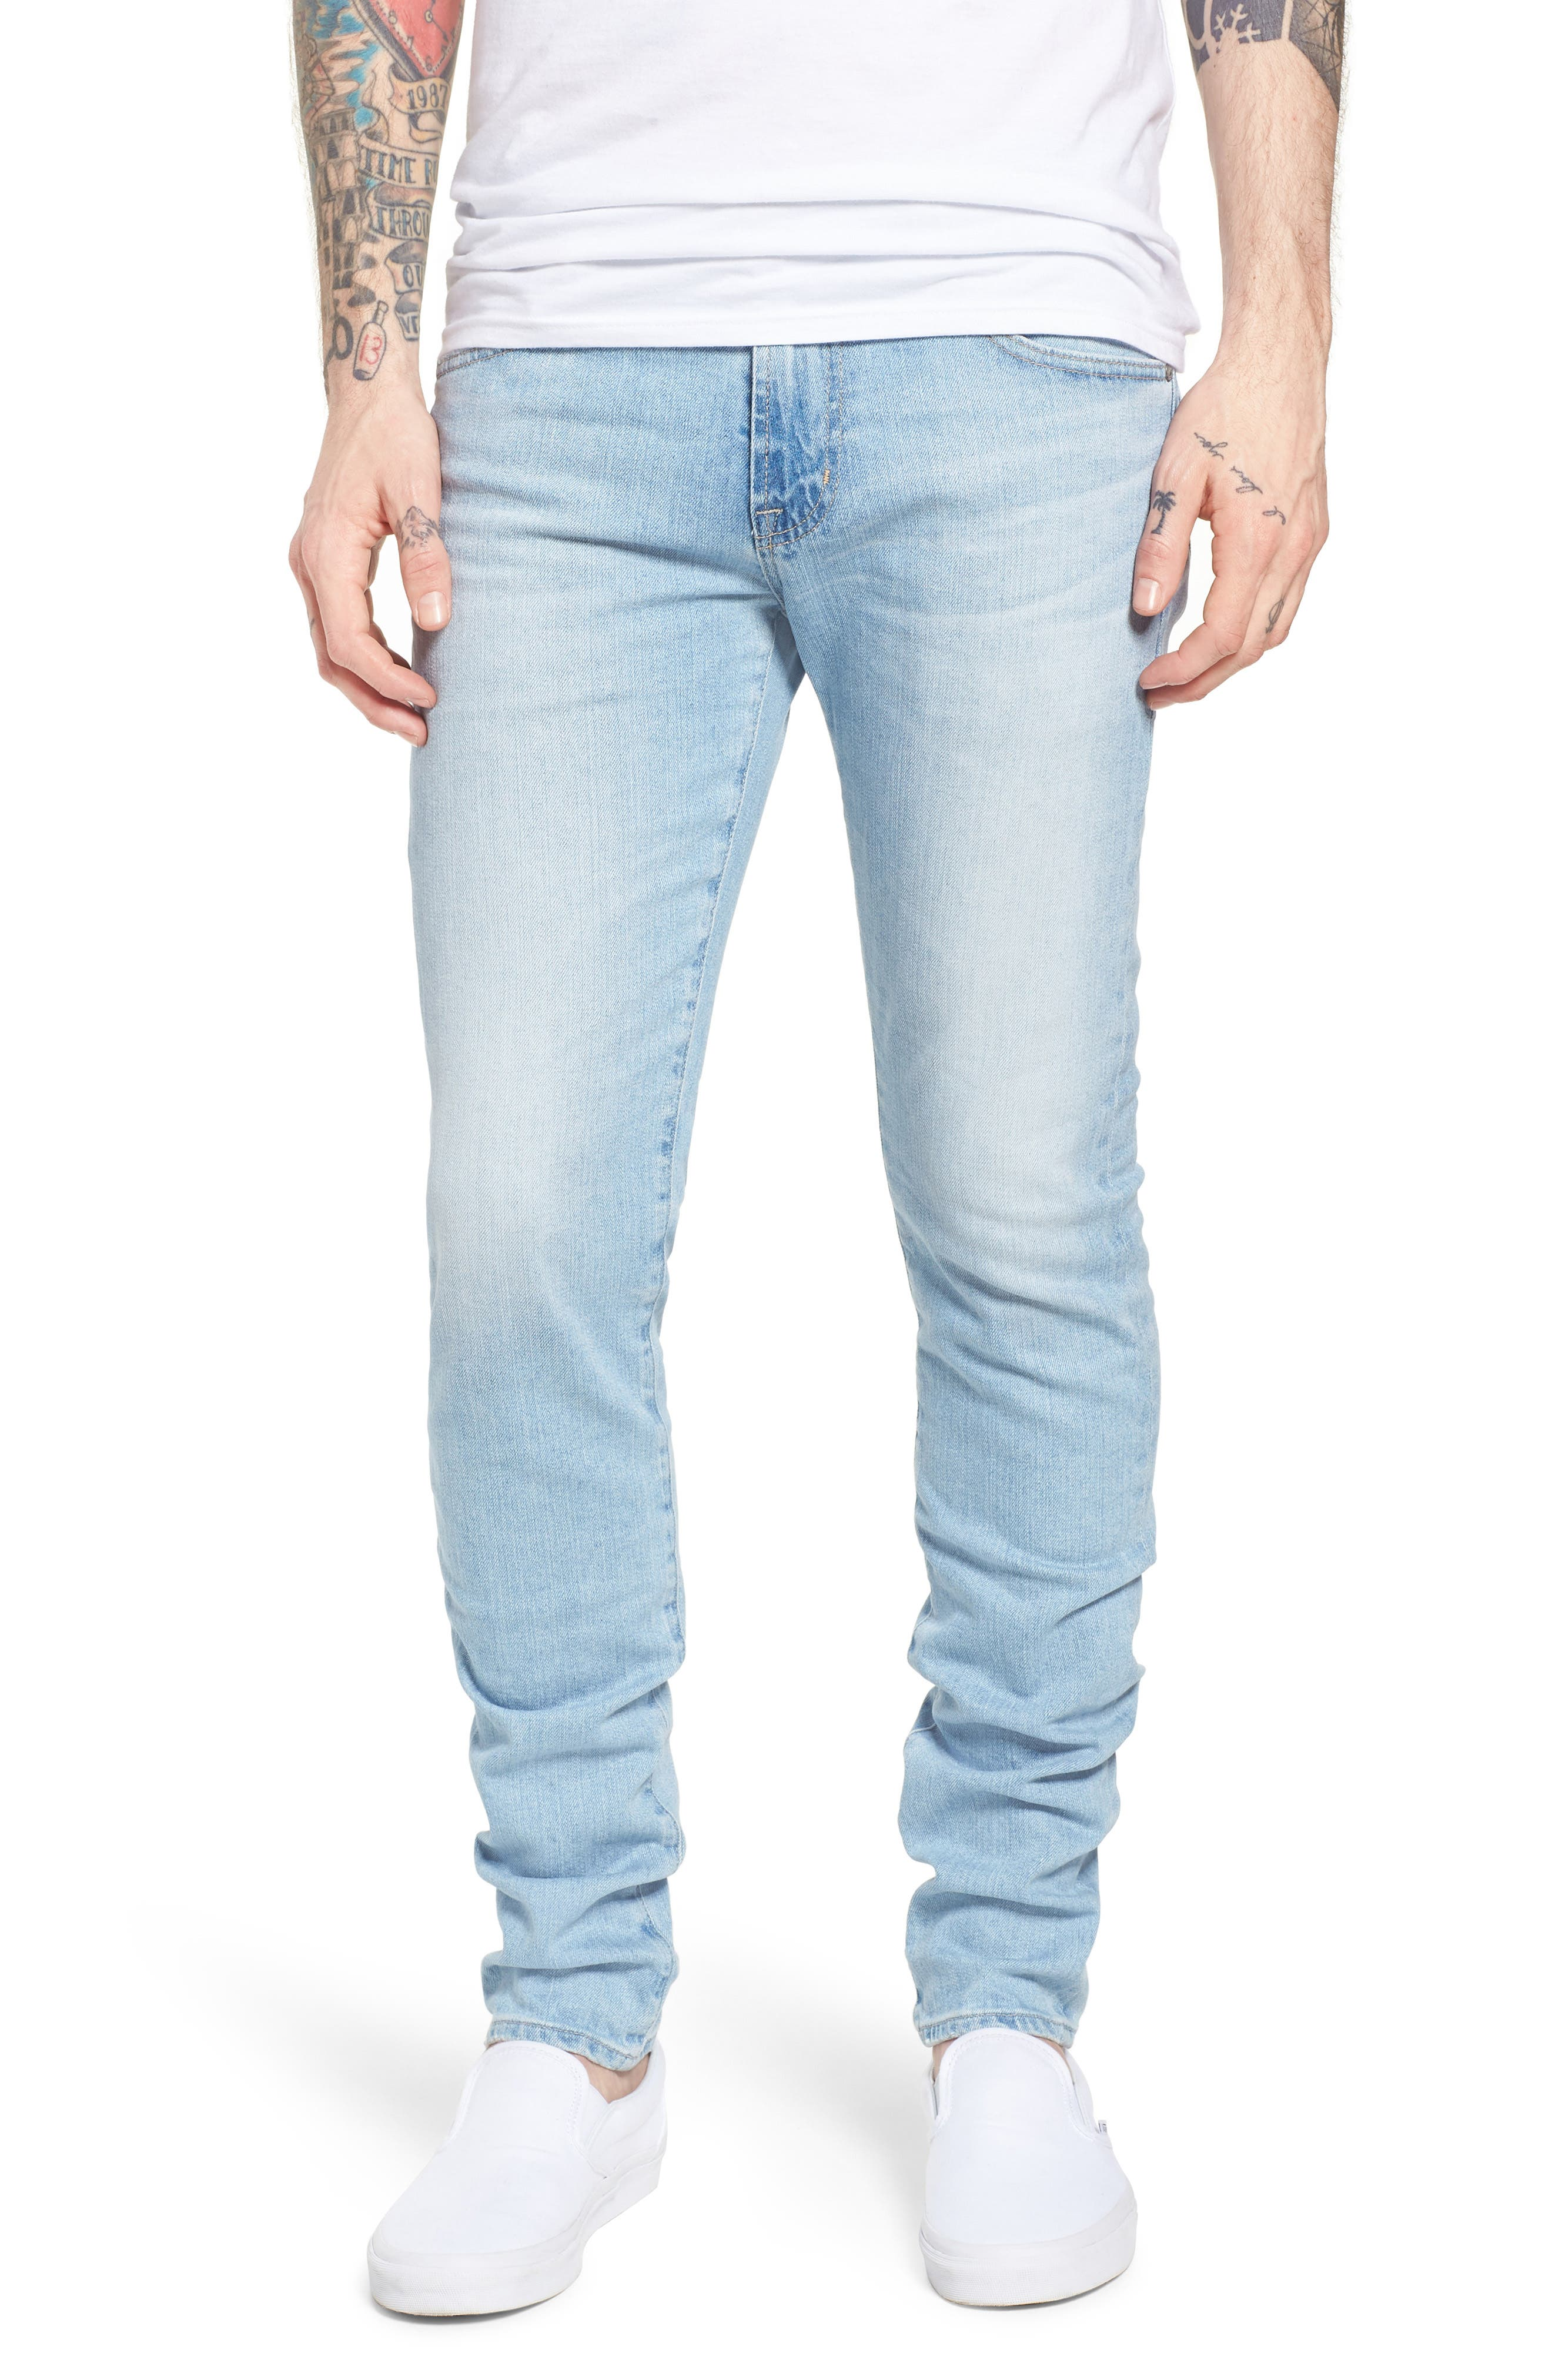 Stockton Skinny Fit Jeans,                         Main,                         color, 21 Years Solstice